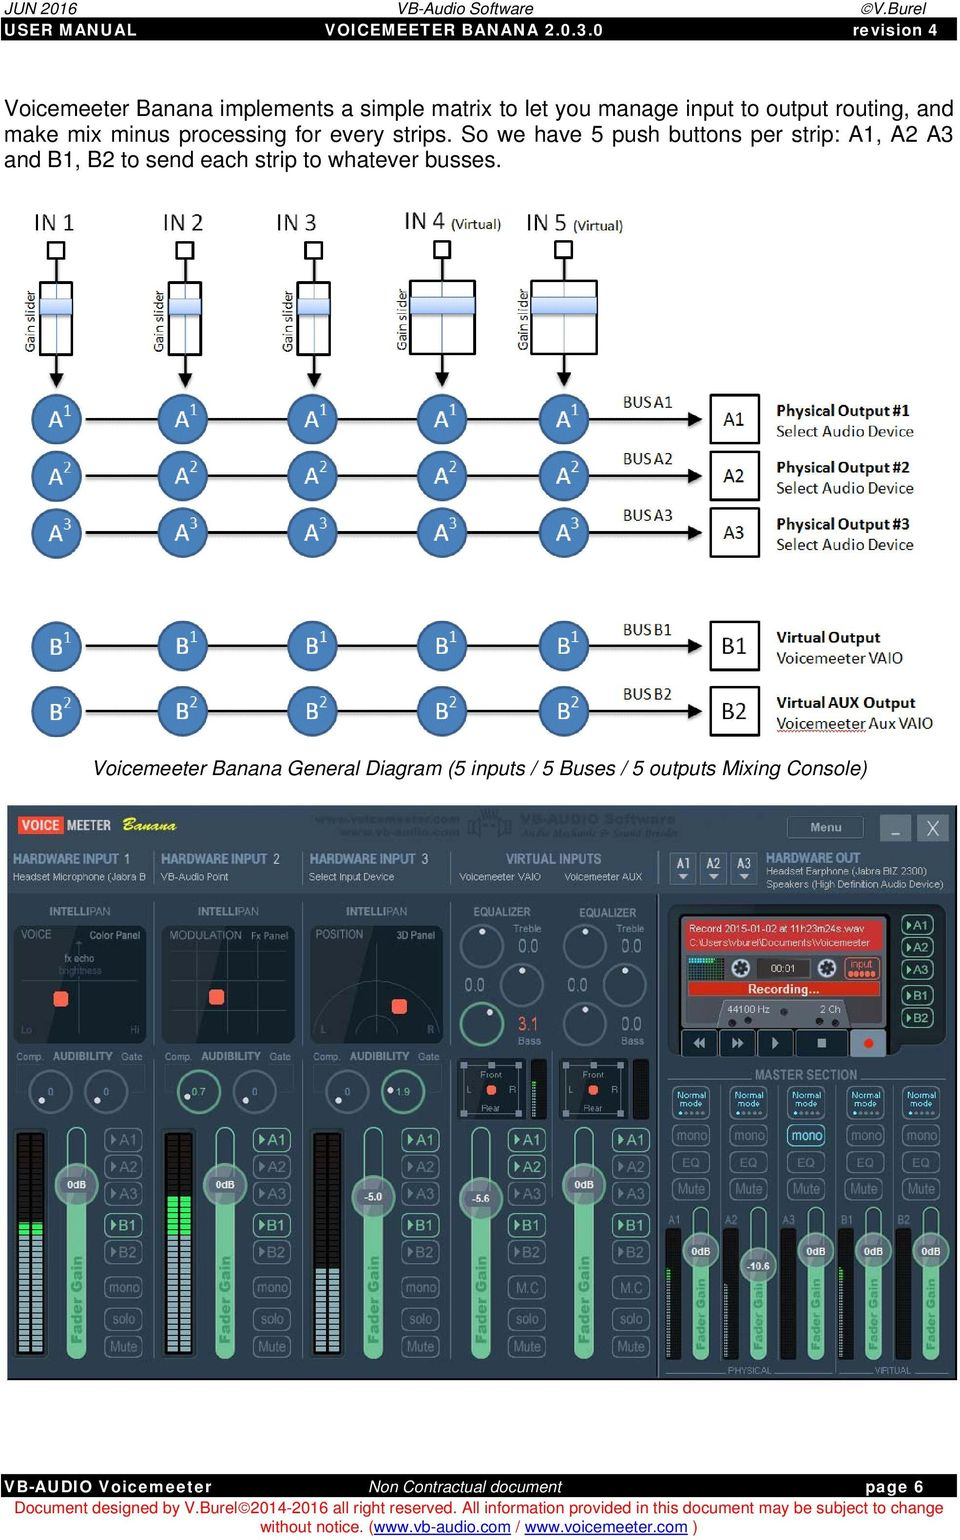 JUN 2016 VB-Audio Software V Burel USER MANUAL VOICEMEETER